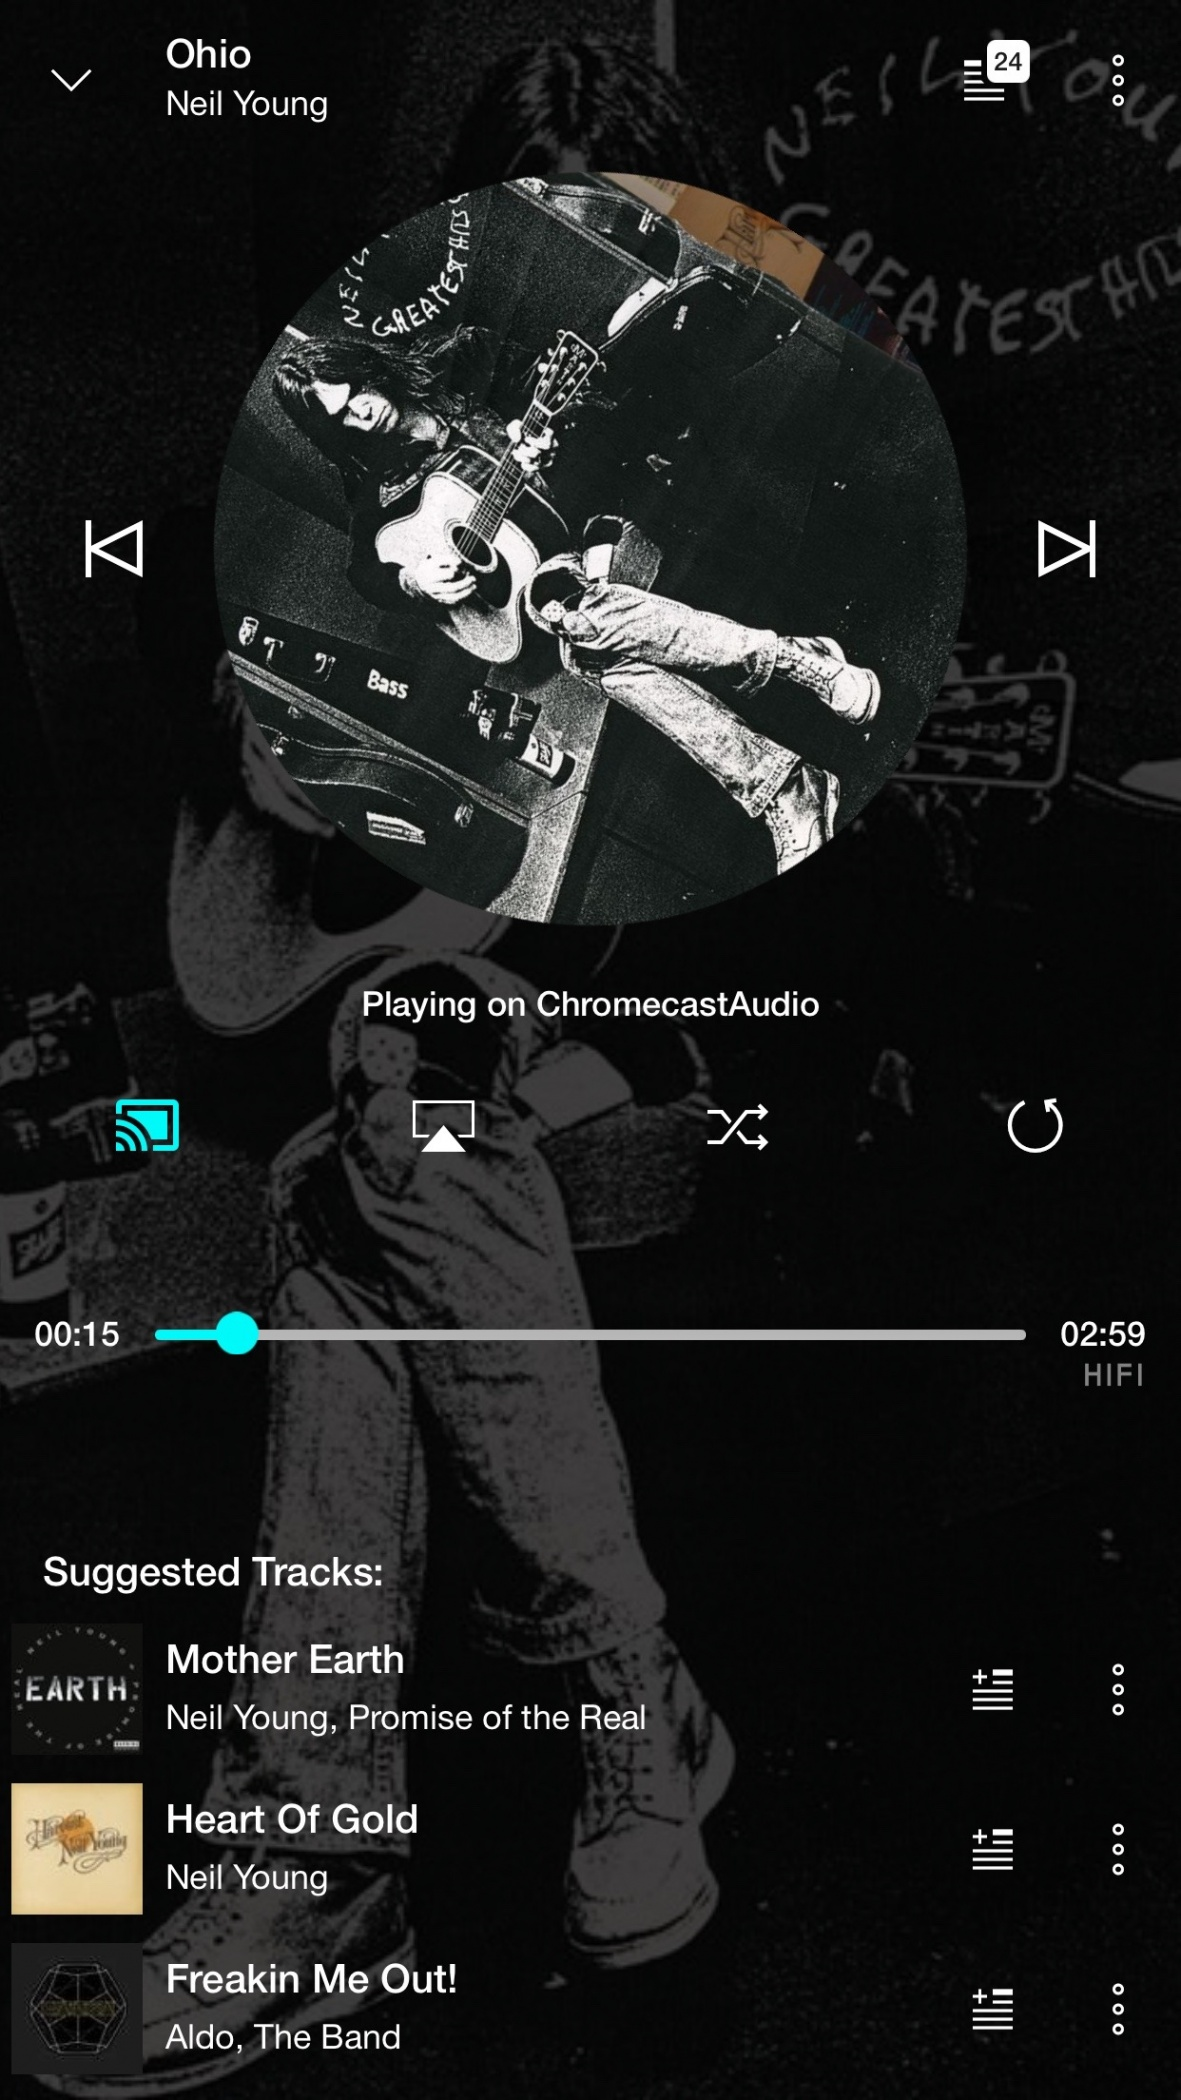 Tidal Now Has Chromecast Support! - Networking, Networked